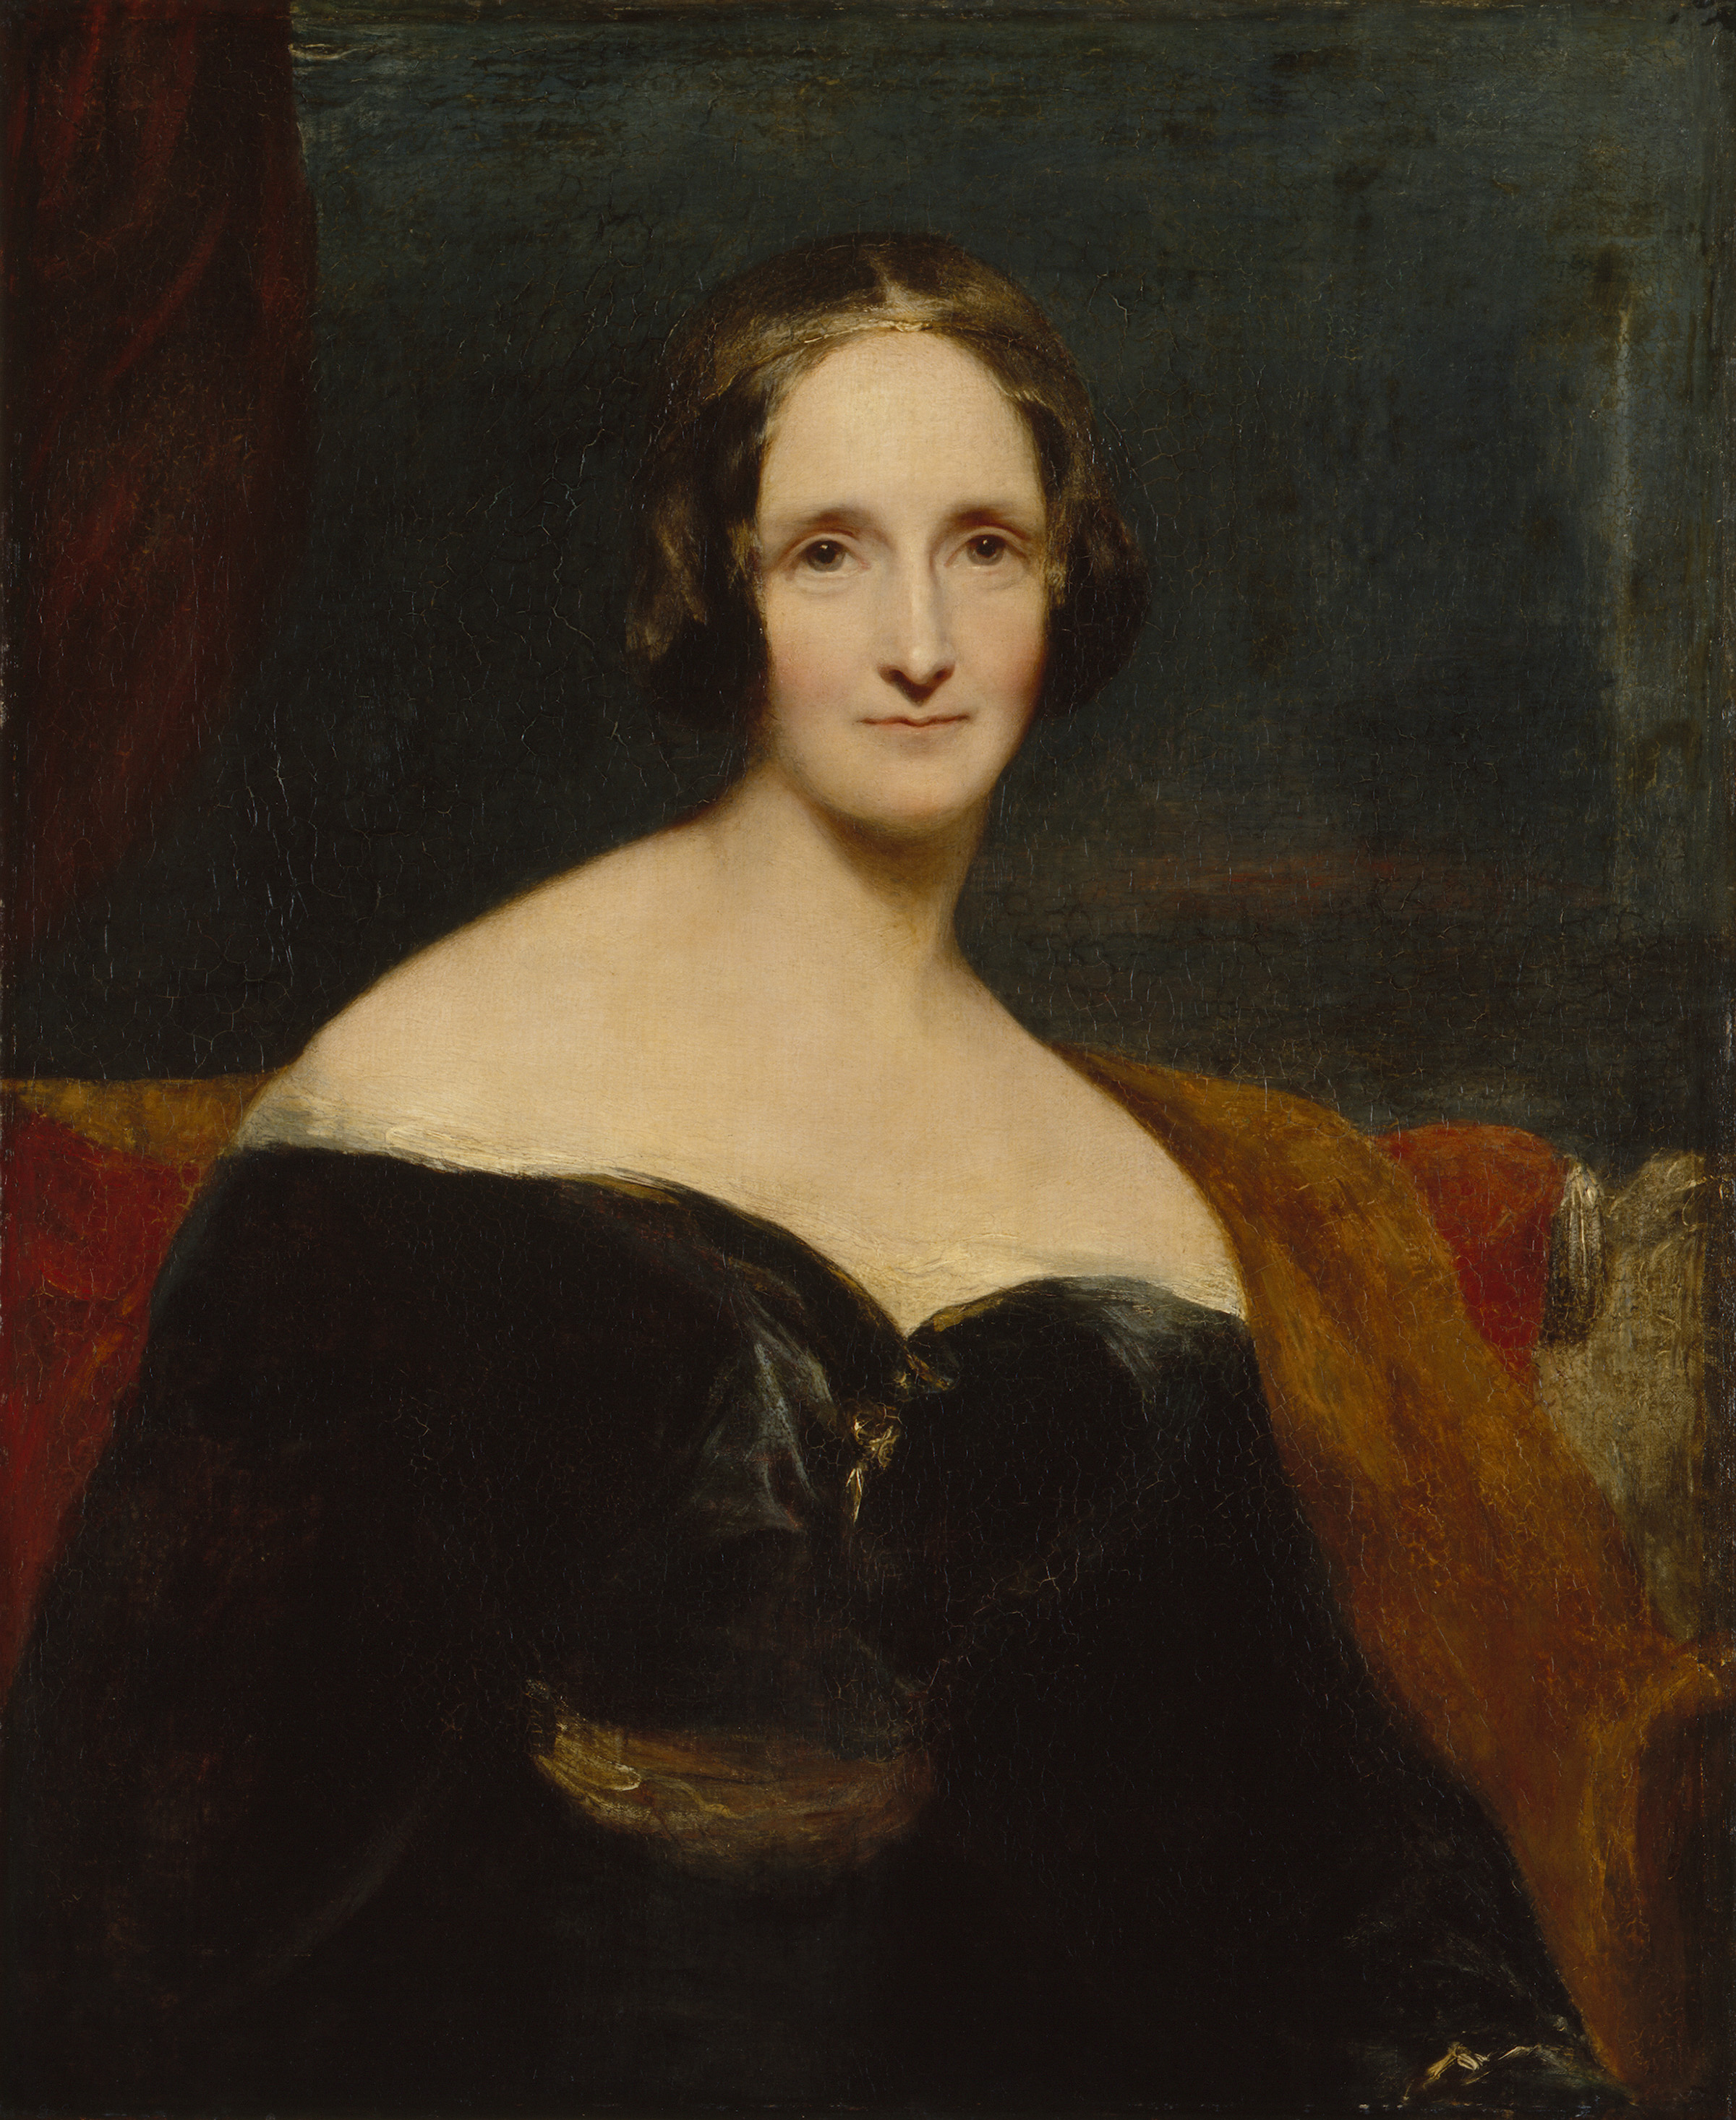 Percy bysshe shelley quotes quotesgram - Mary Wollstonecraft Shelley By Richard Rothwell 1840